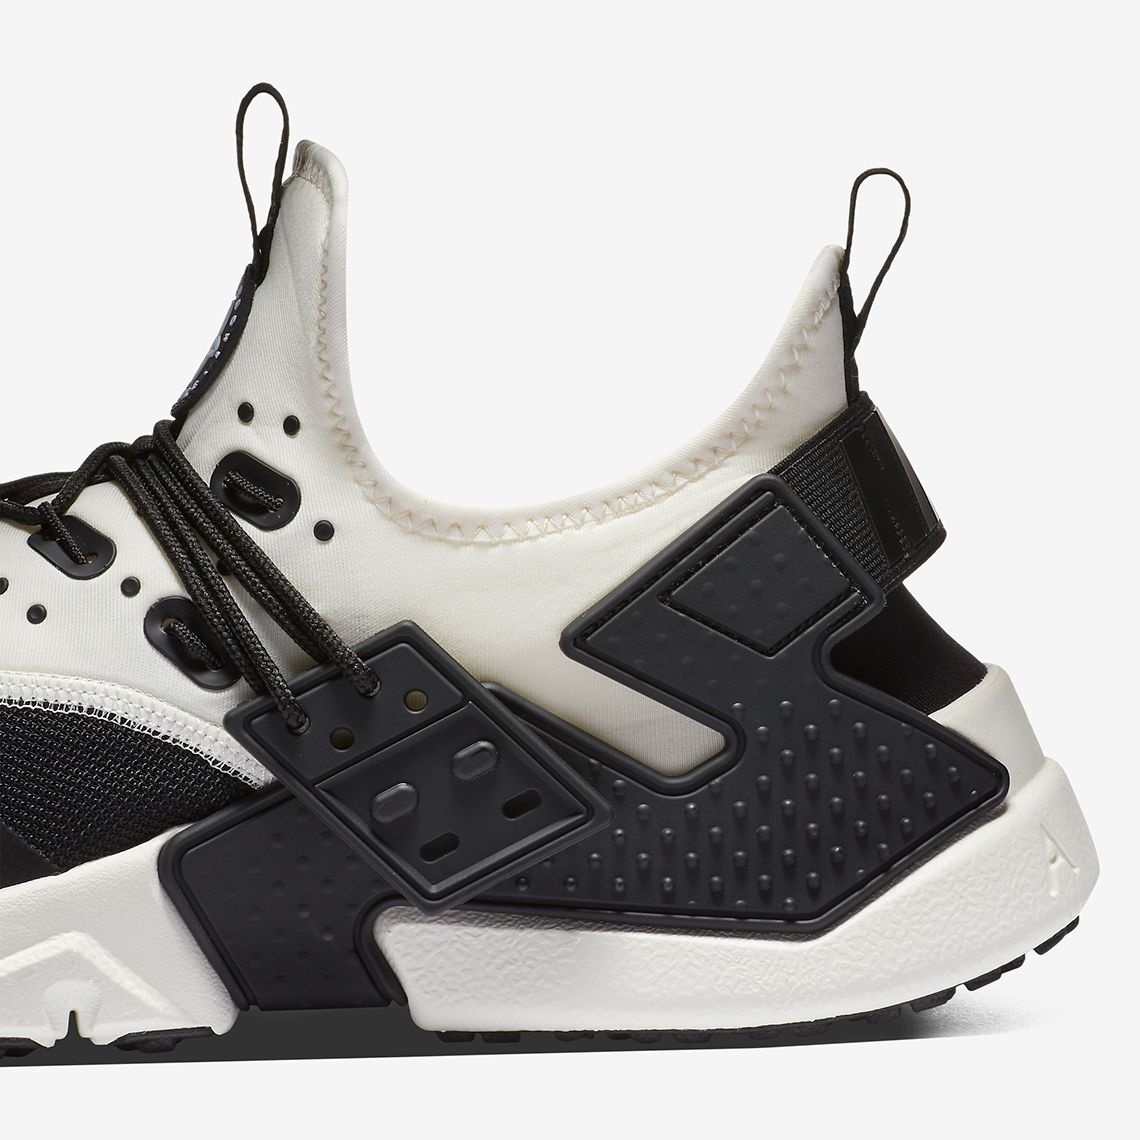 b8ccbd15b718 Nike Air Huarache Drift Customizable